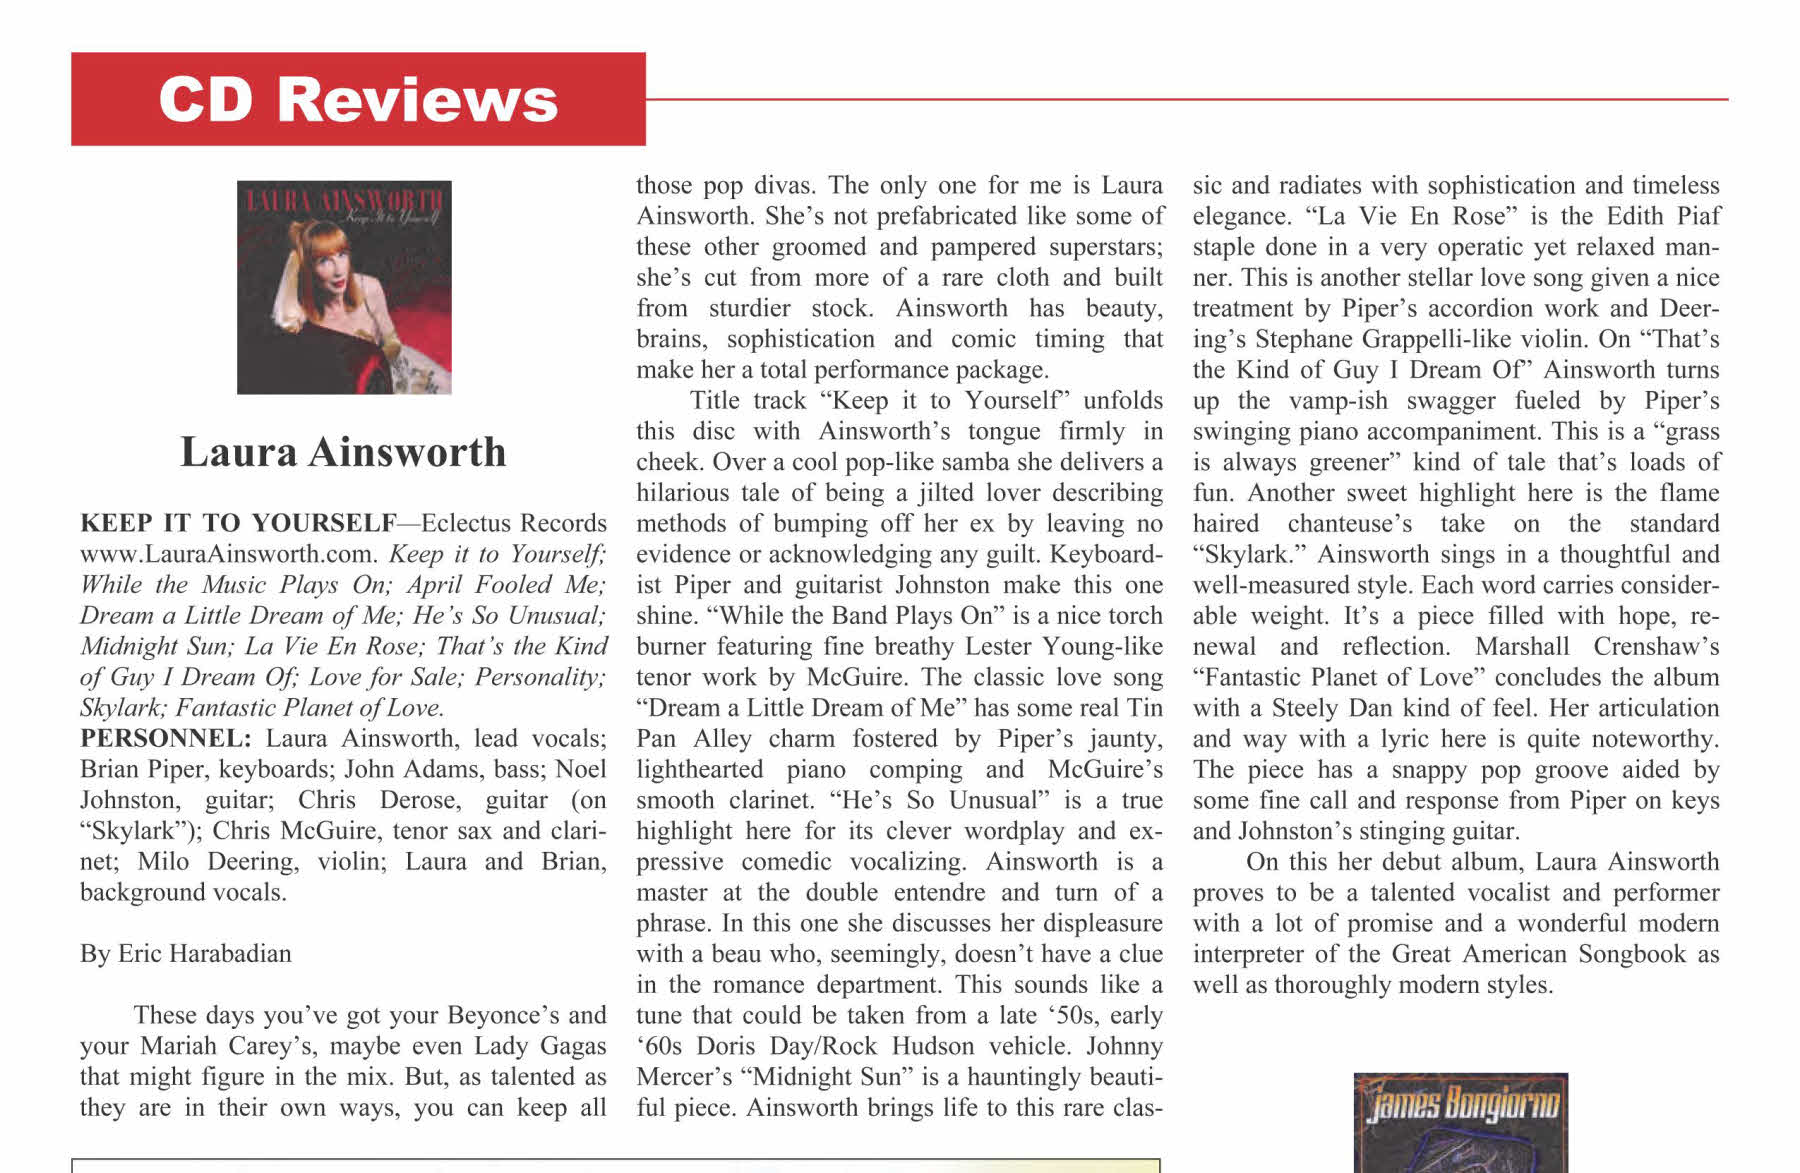 Review from